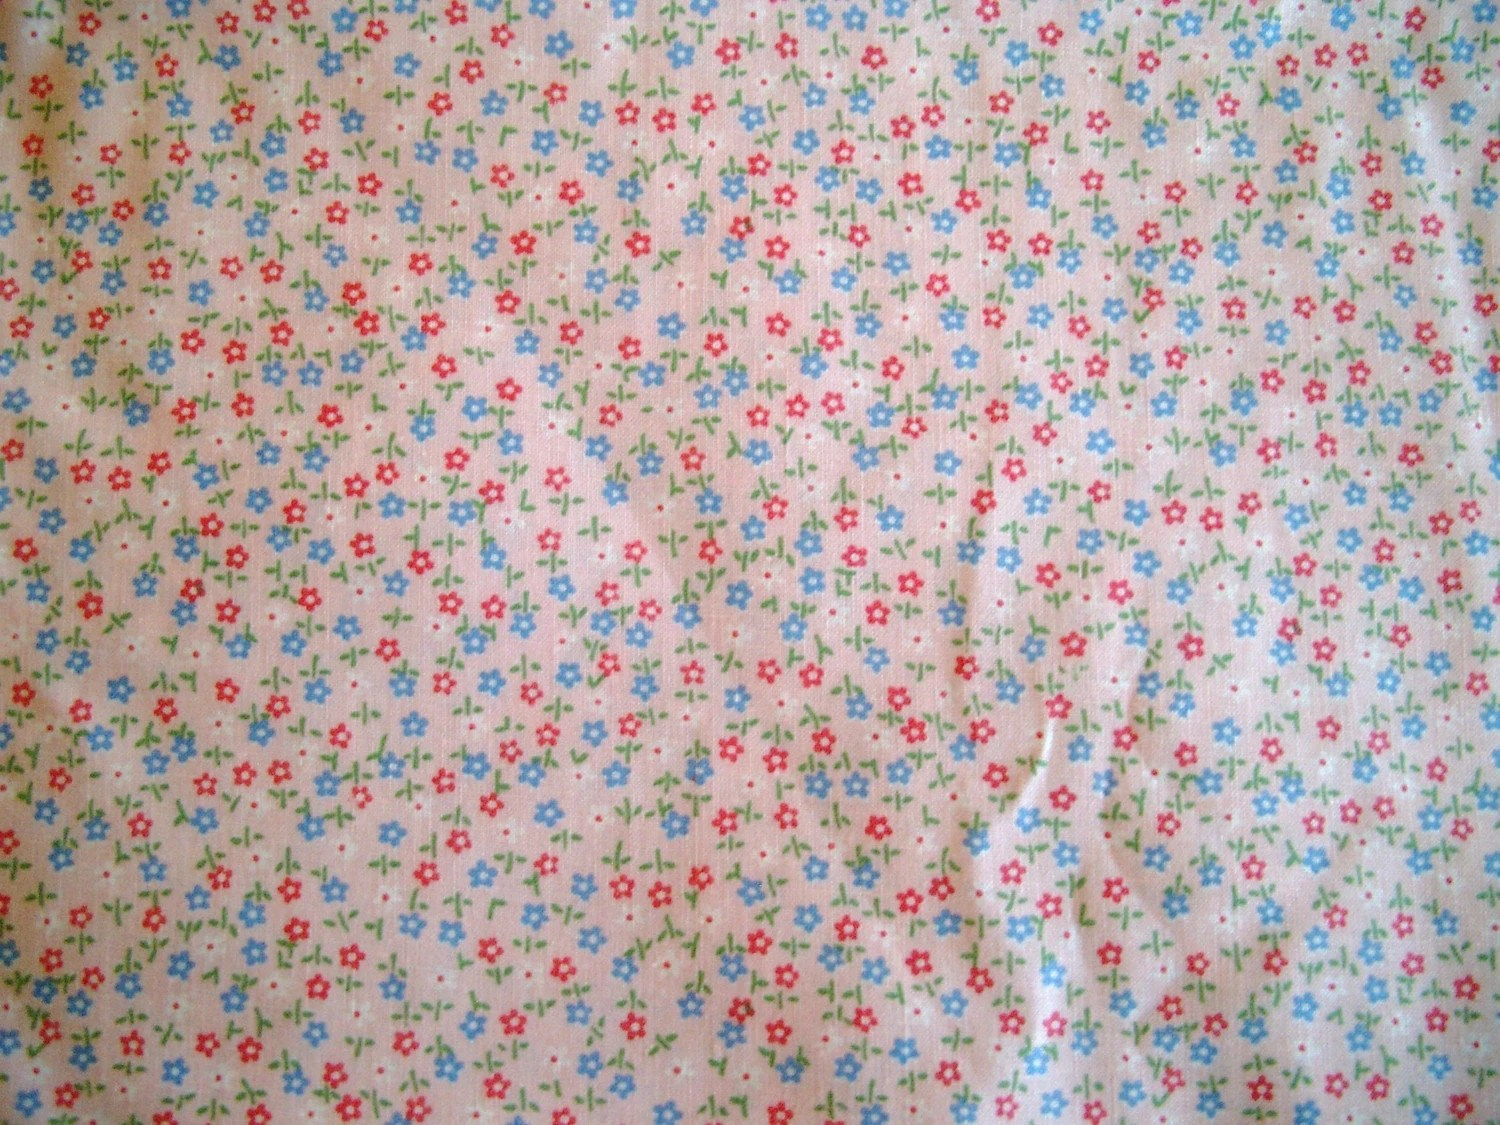 Flour Sack Fabric By The Yard Flour Sack Material By Thevintagebaglady On Etsy